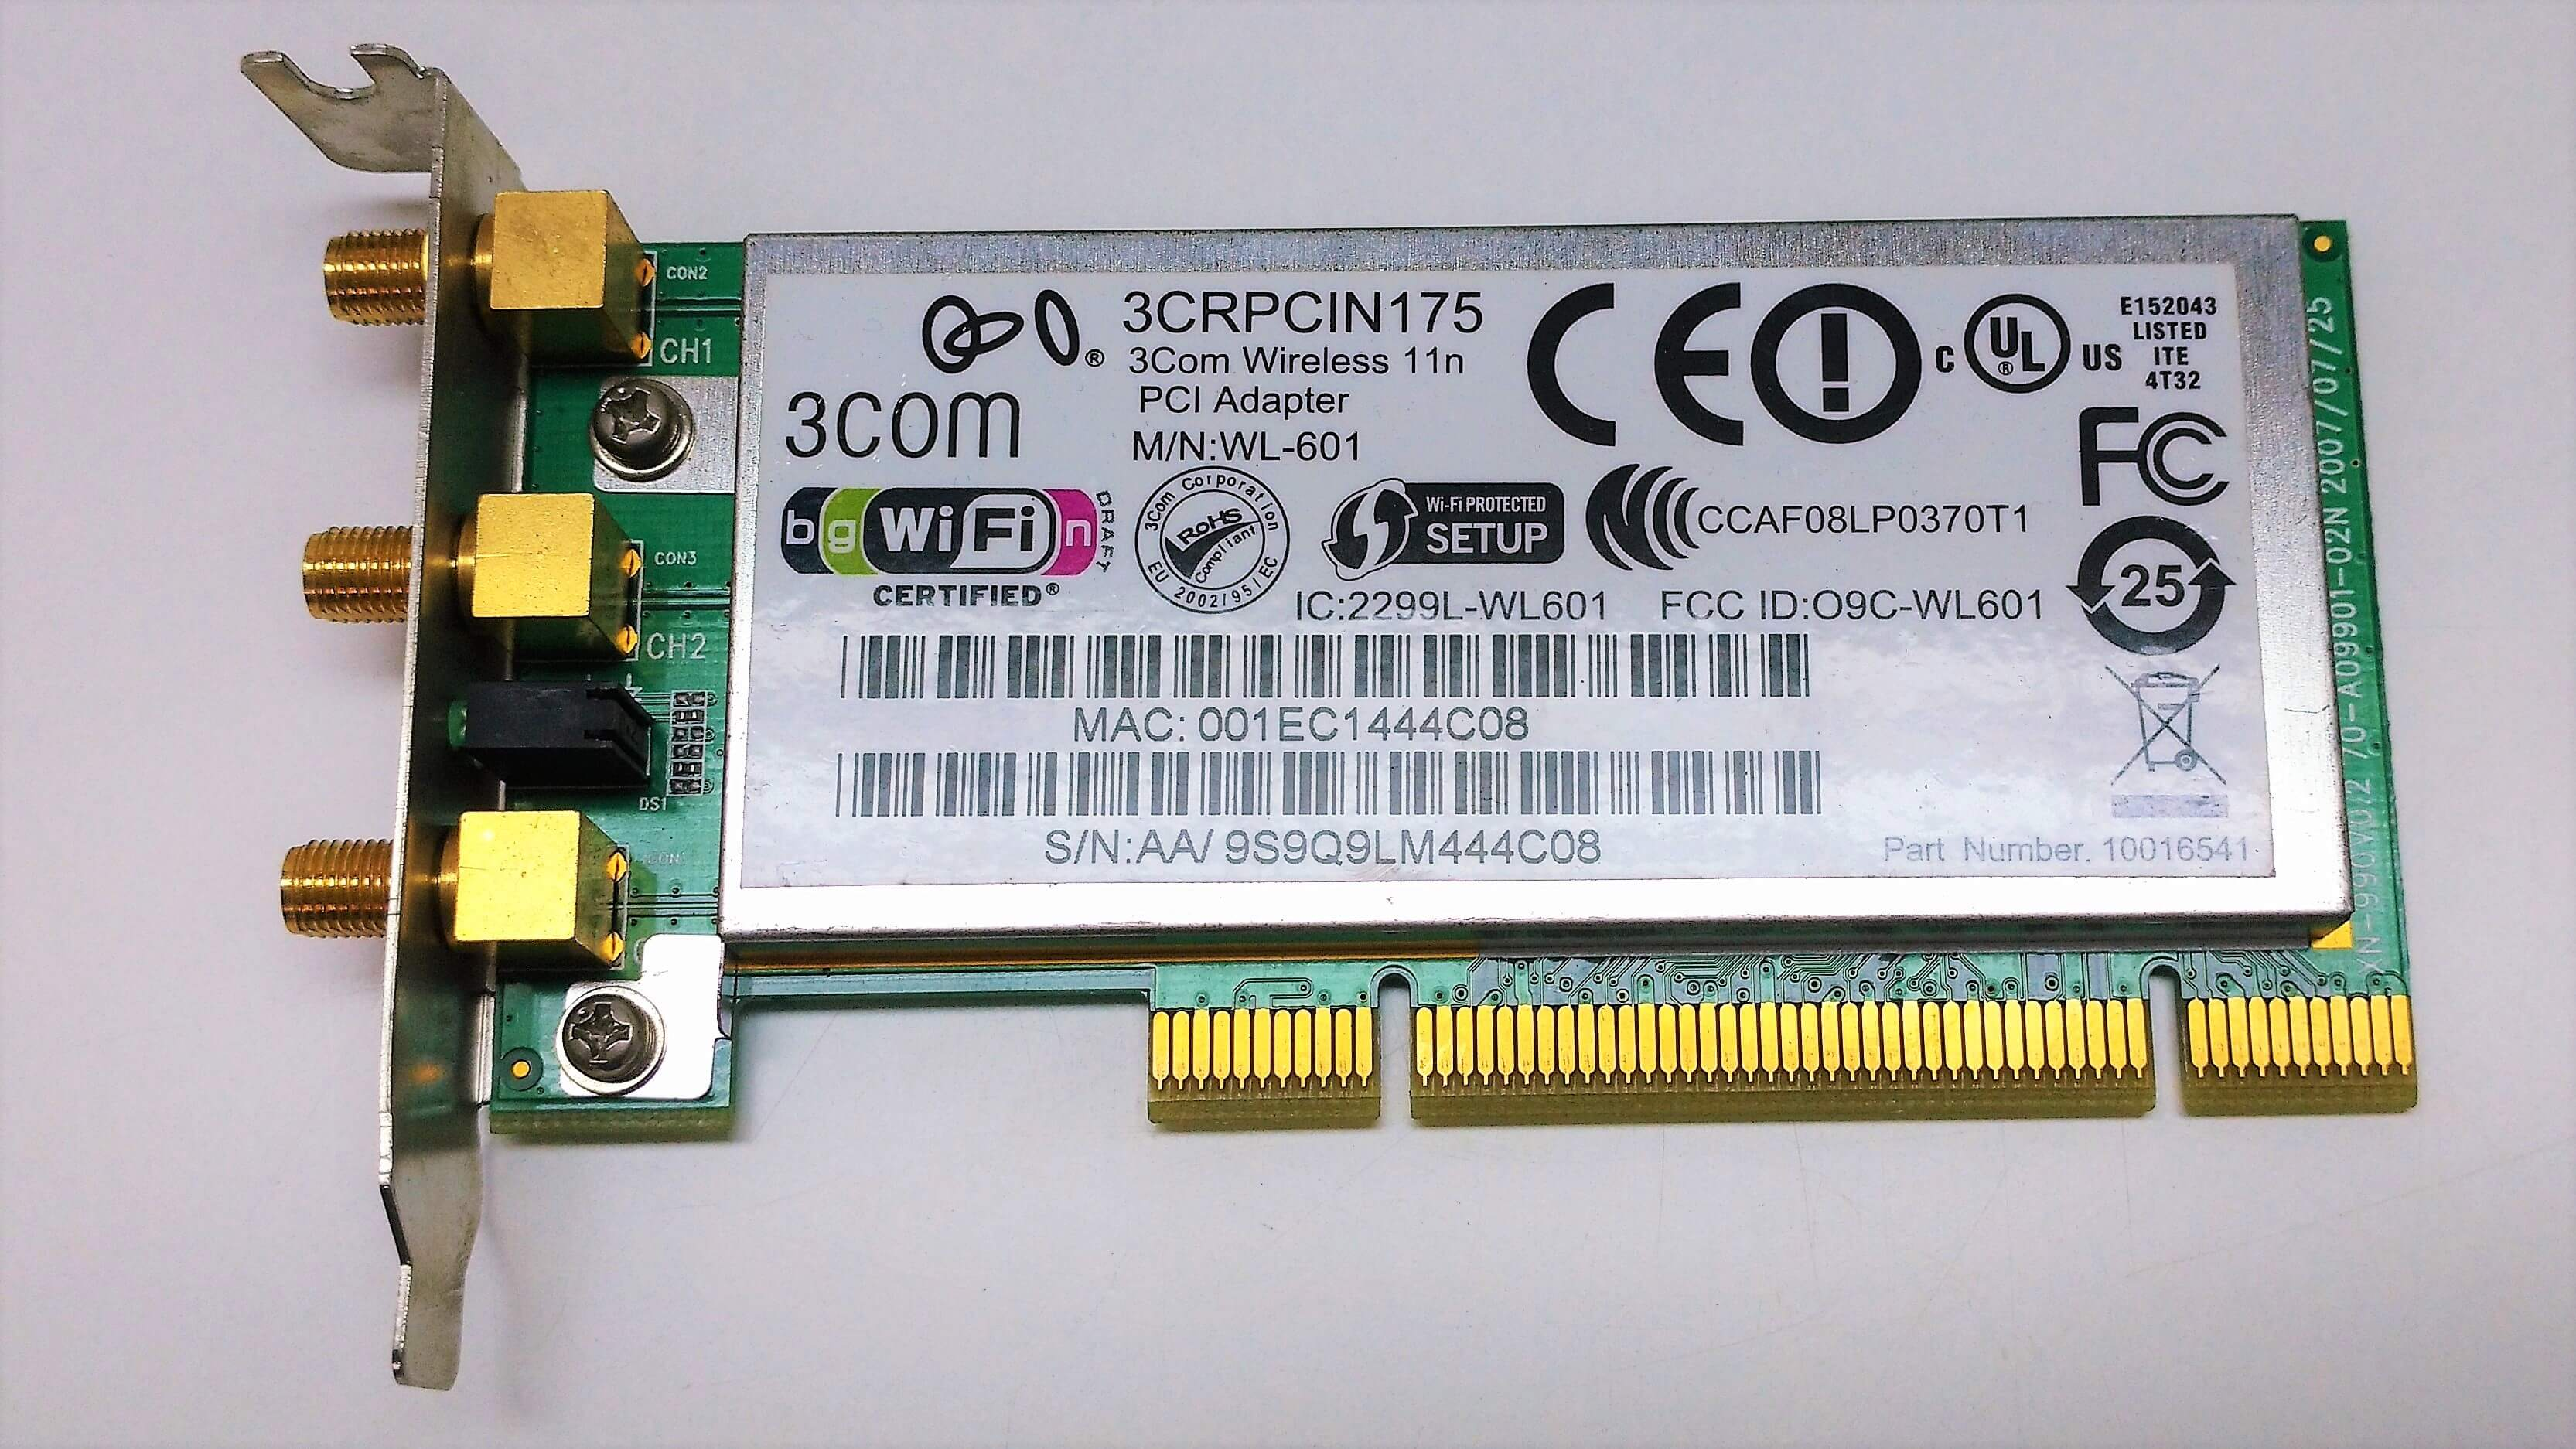 KARTA SIECIOWA WIRELESS 3COM 3CRPCIN175 PCI LOW